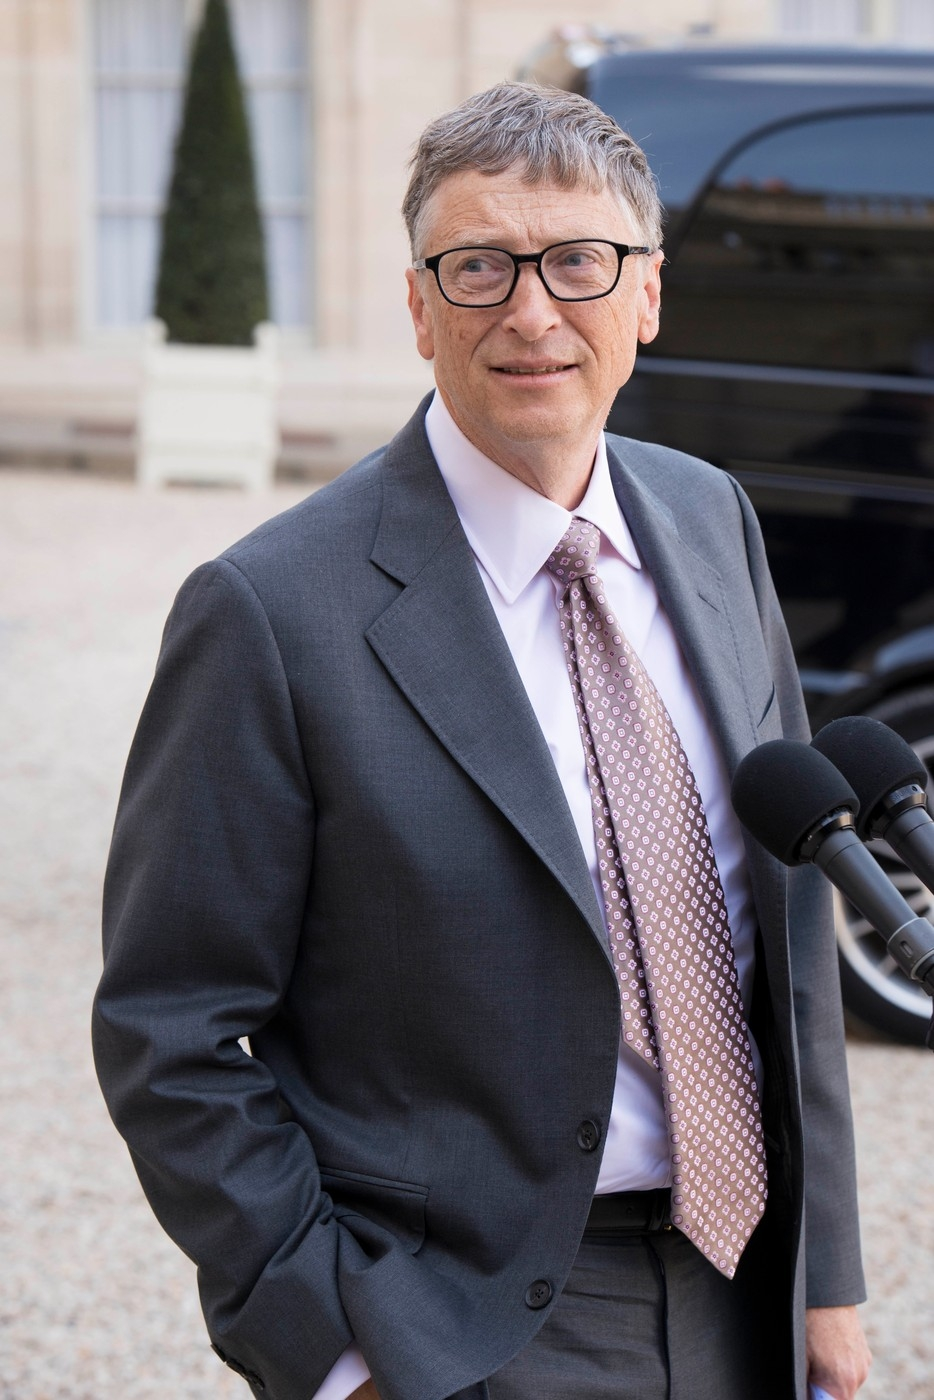 Bill Gates at the Elysee Presidential Palace